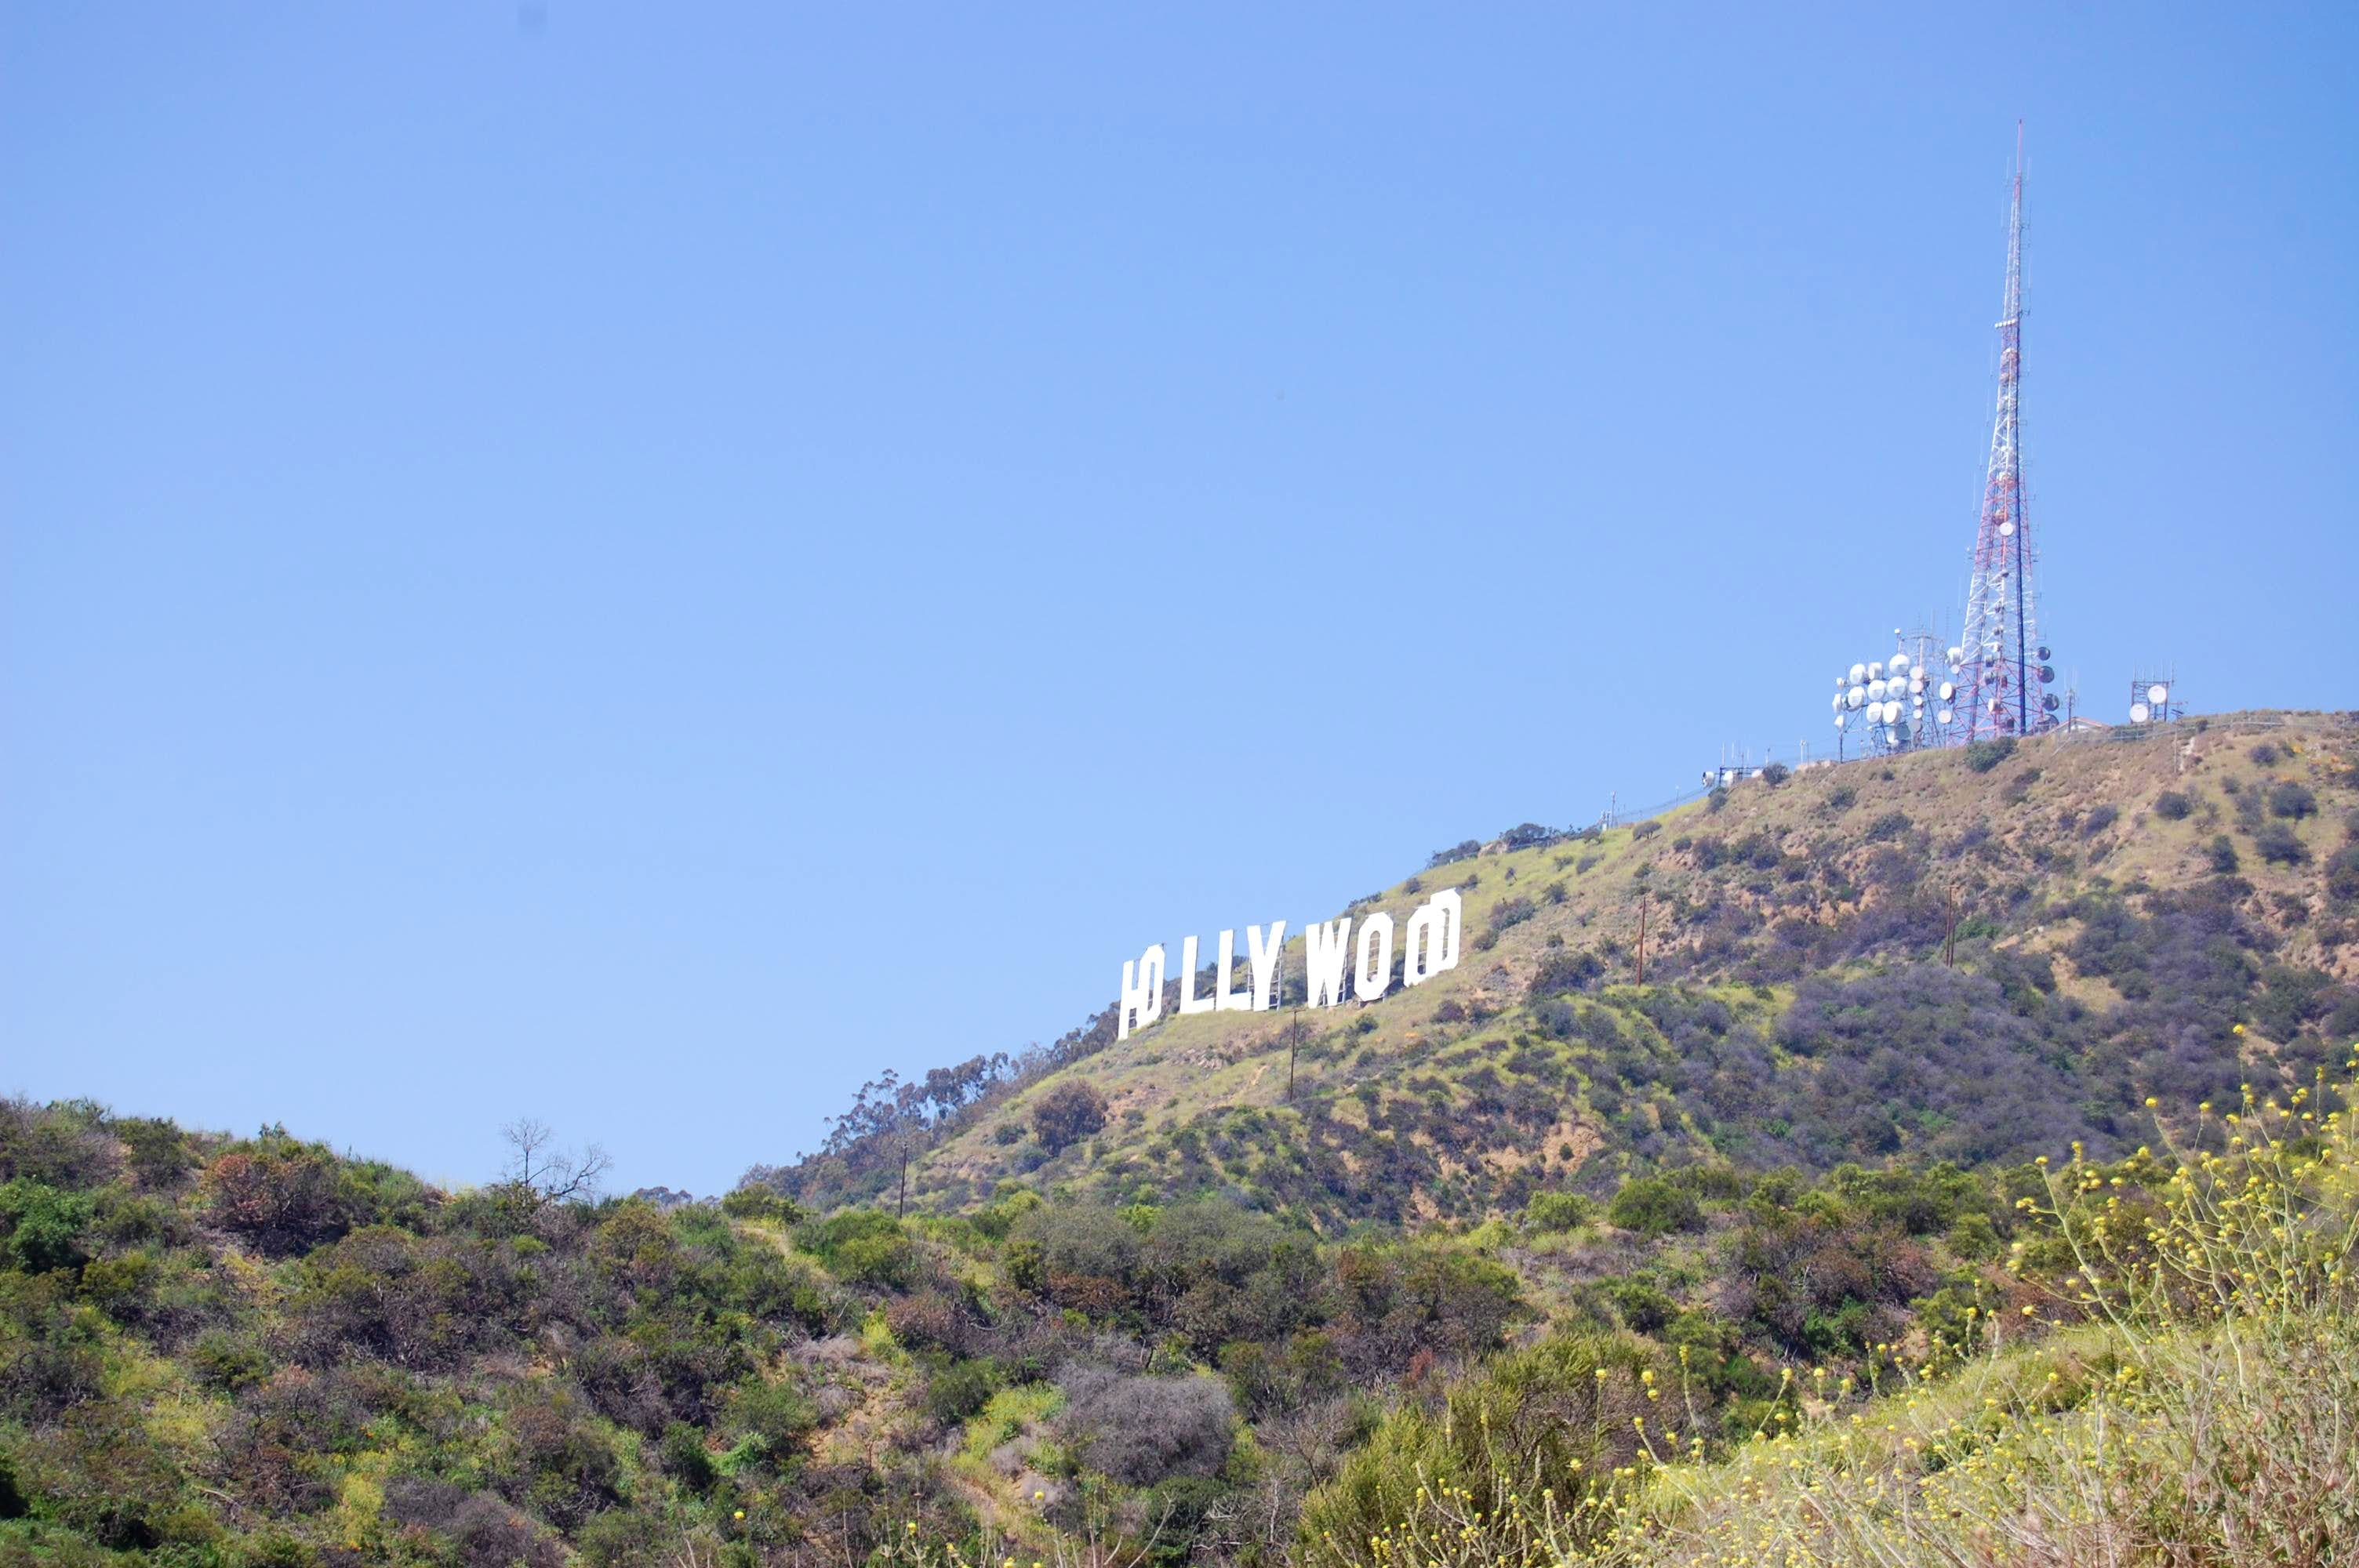 Hollywood Sign - Mount Lee